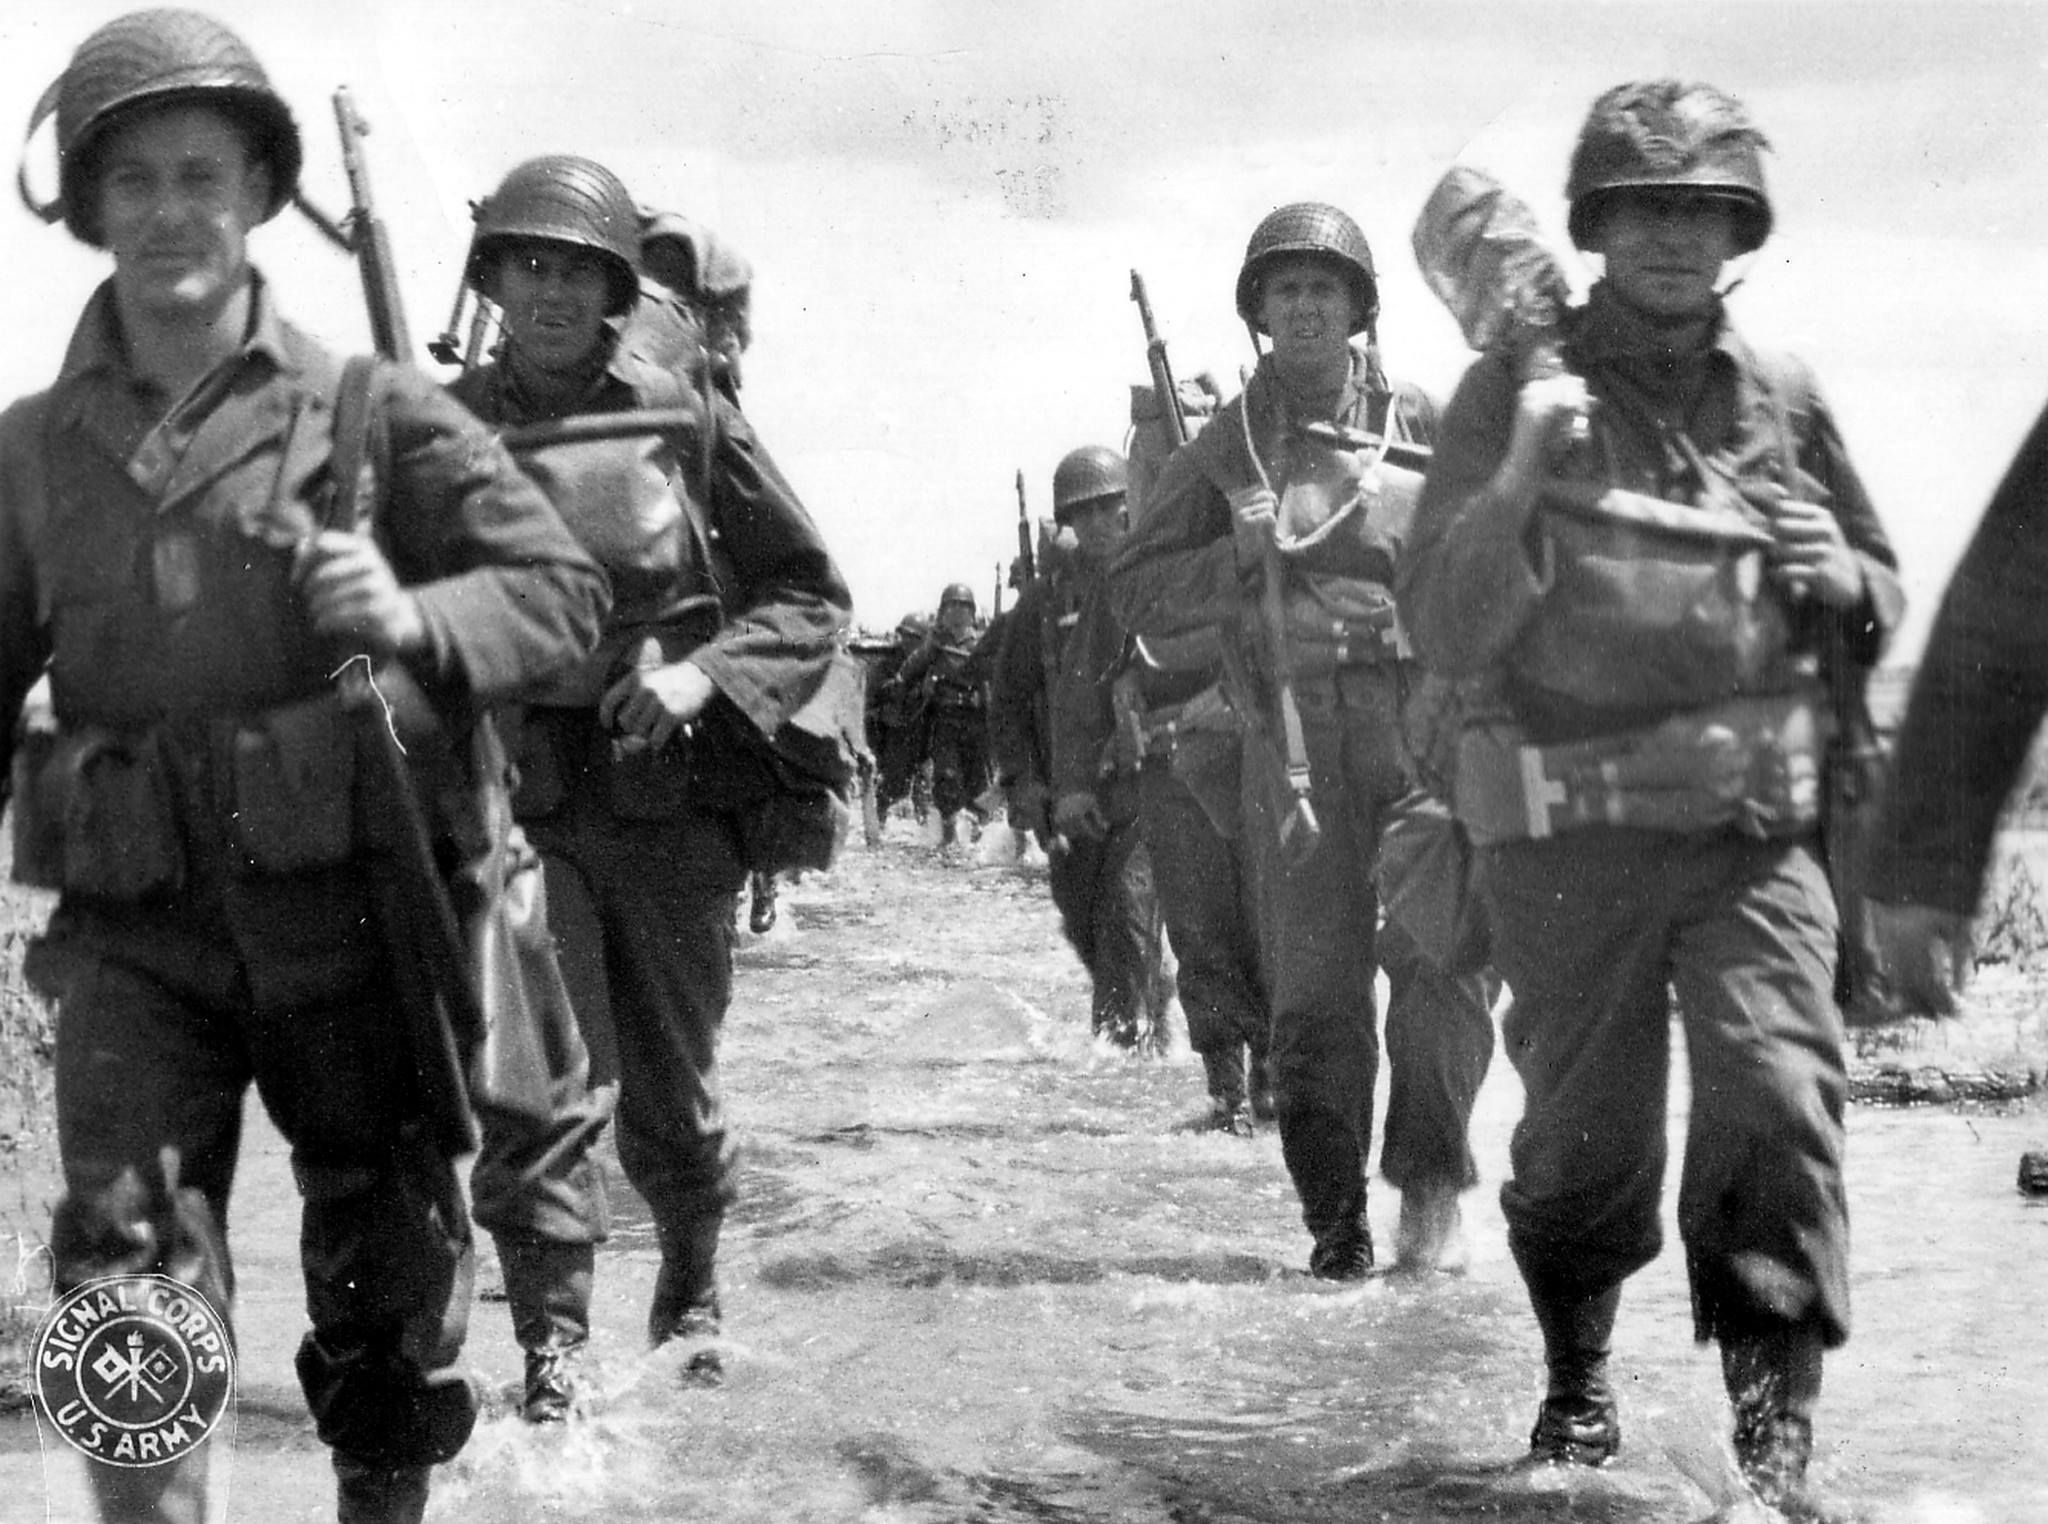 Pin on Operation Overlord, Tuesday june 6, 1944 - D-Day!